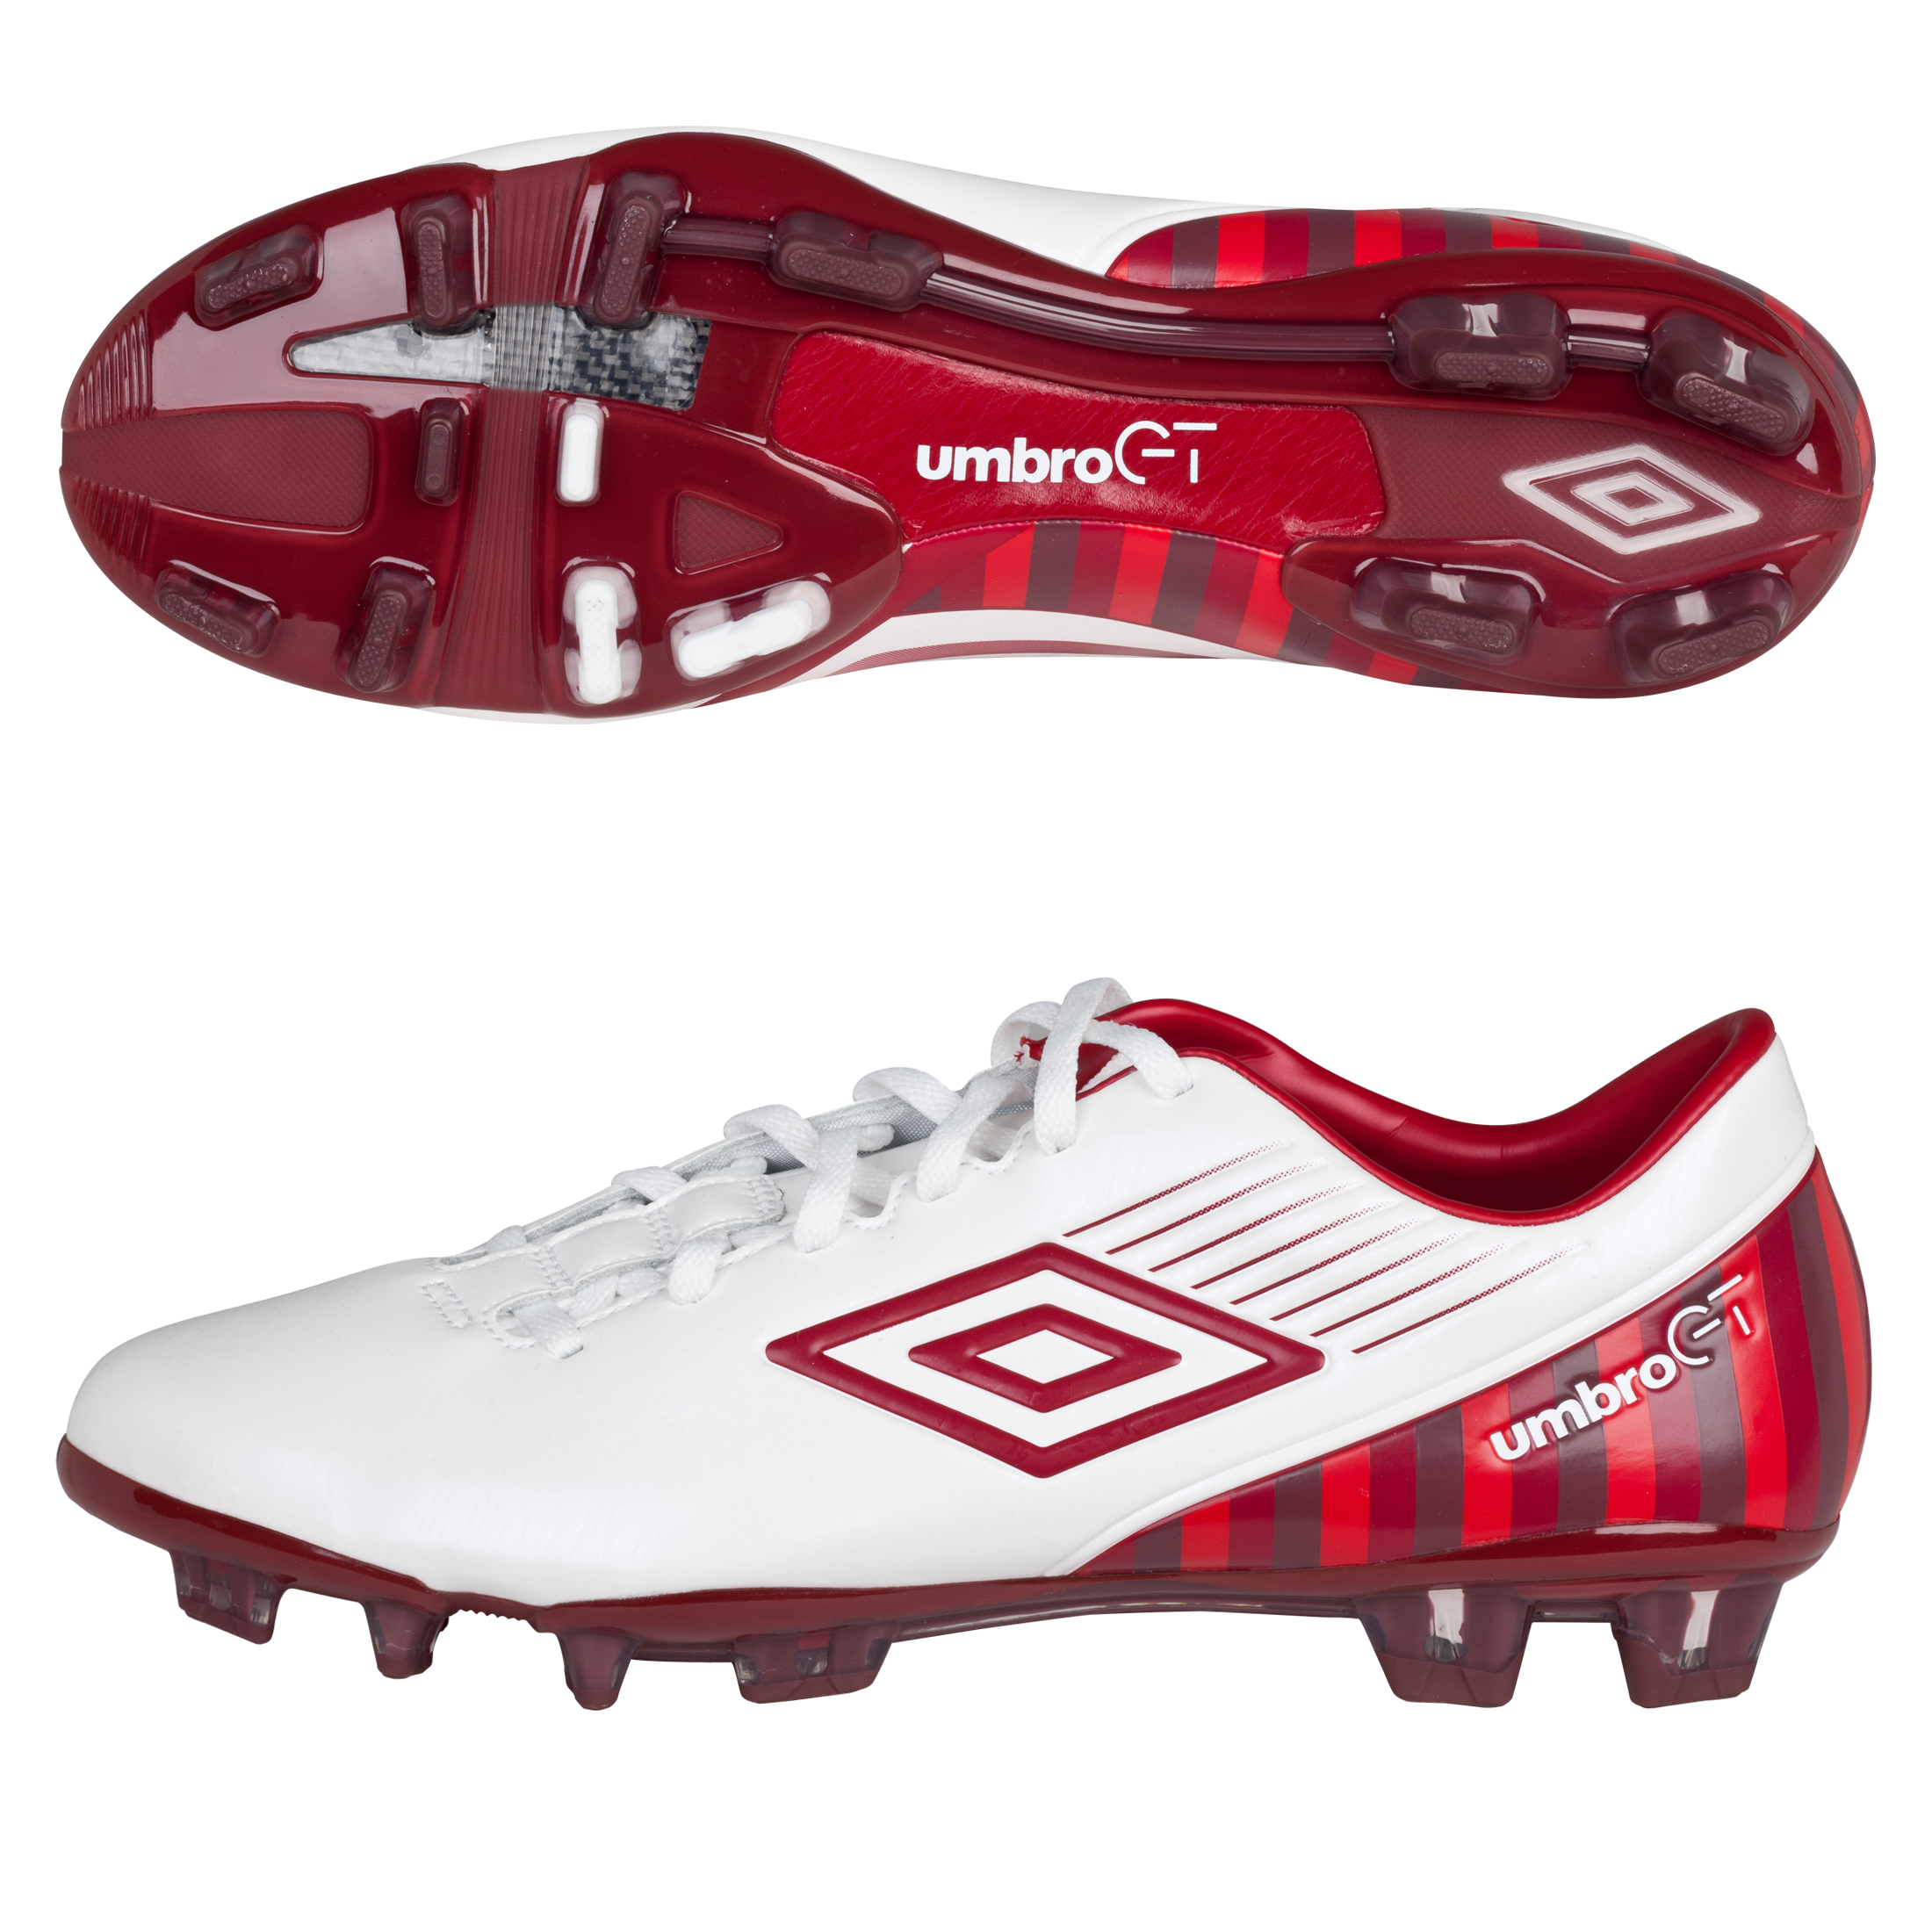 Umbro Gt 2 Pro 2012 Firm Ground Football Boots - White / Vermillion / Dark Vermillion / Deep Claret